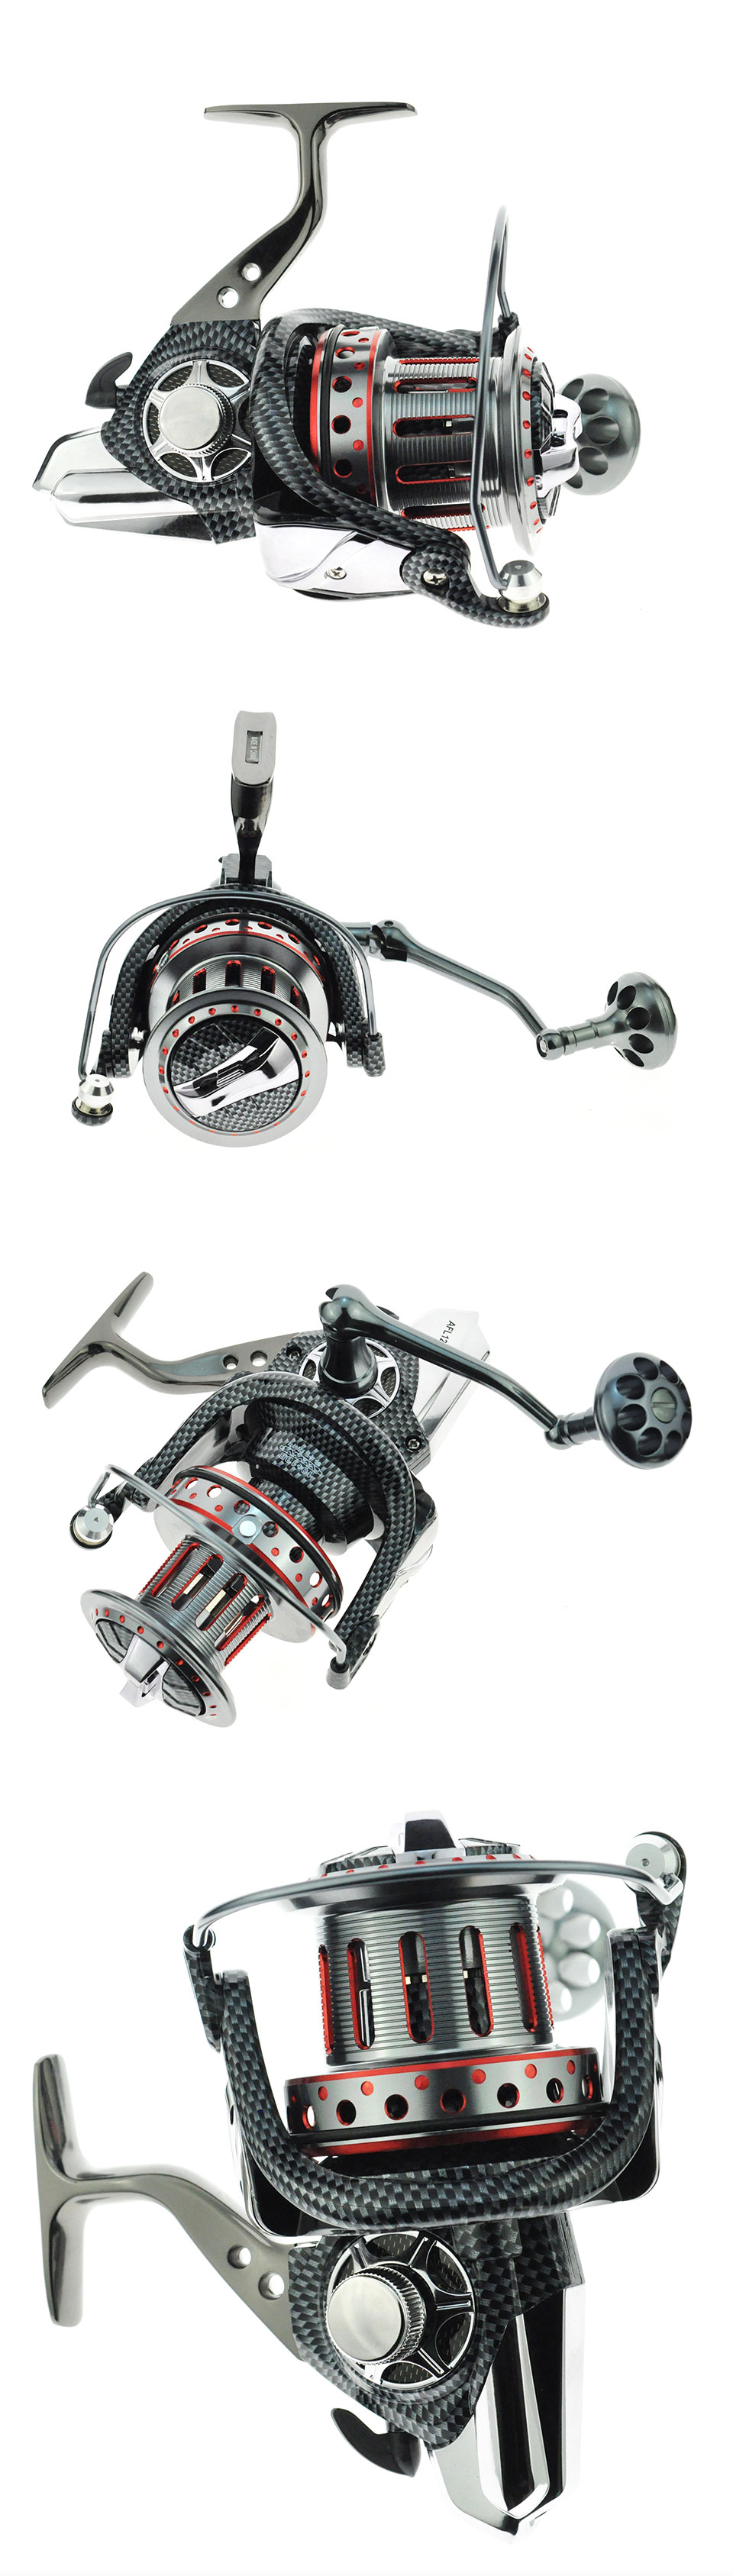 China fishing reel Suppliers